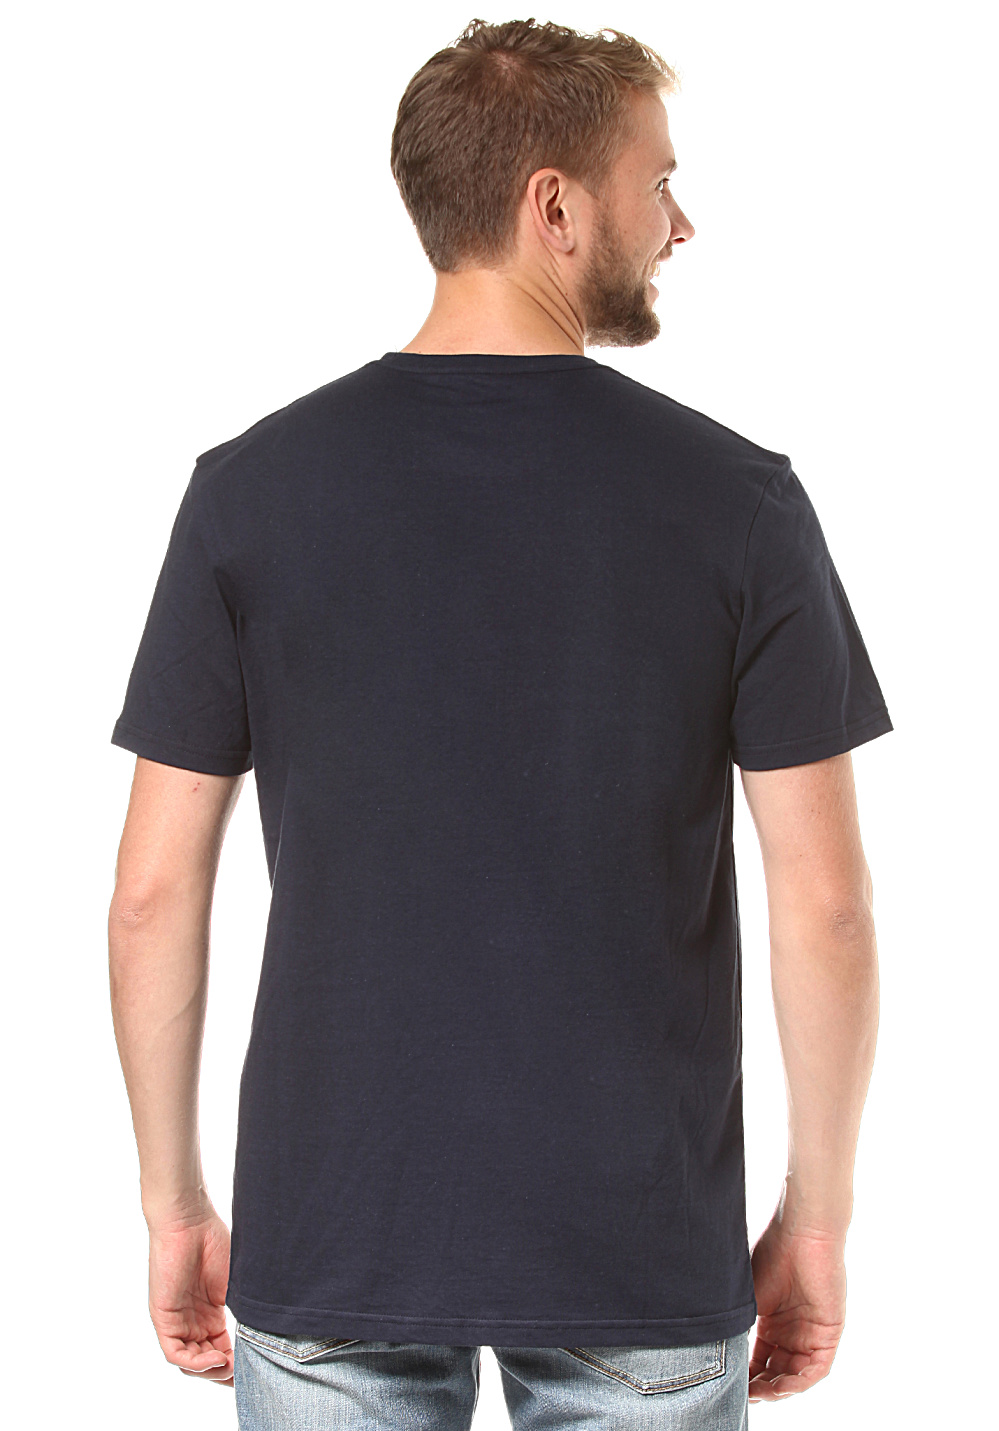 ... Quiksilver Classic Fluid Turns - T-Shirt for Men - Blue. Back to  Overview. 1  2. Previous 8ddea9959d